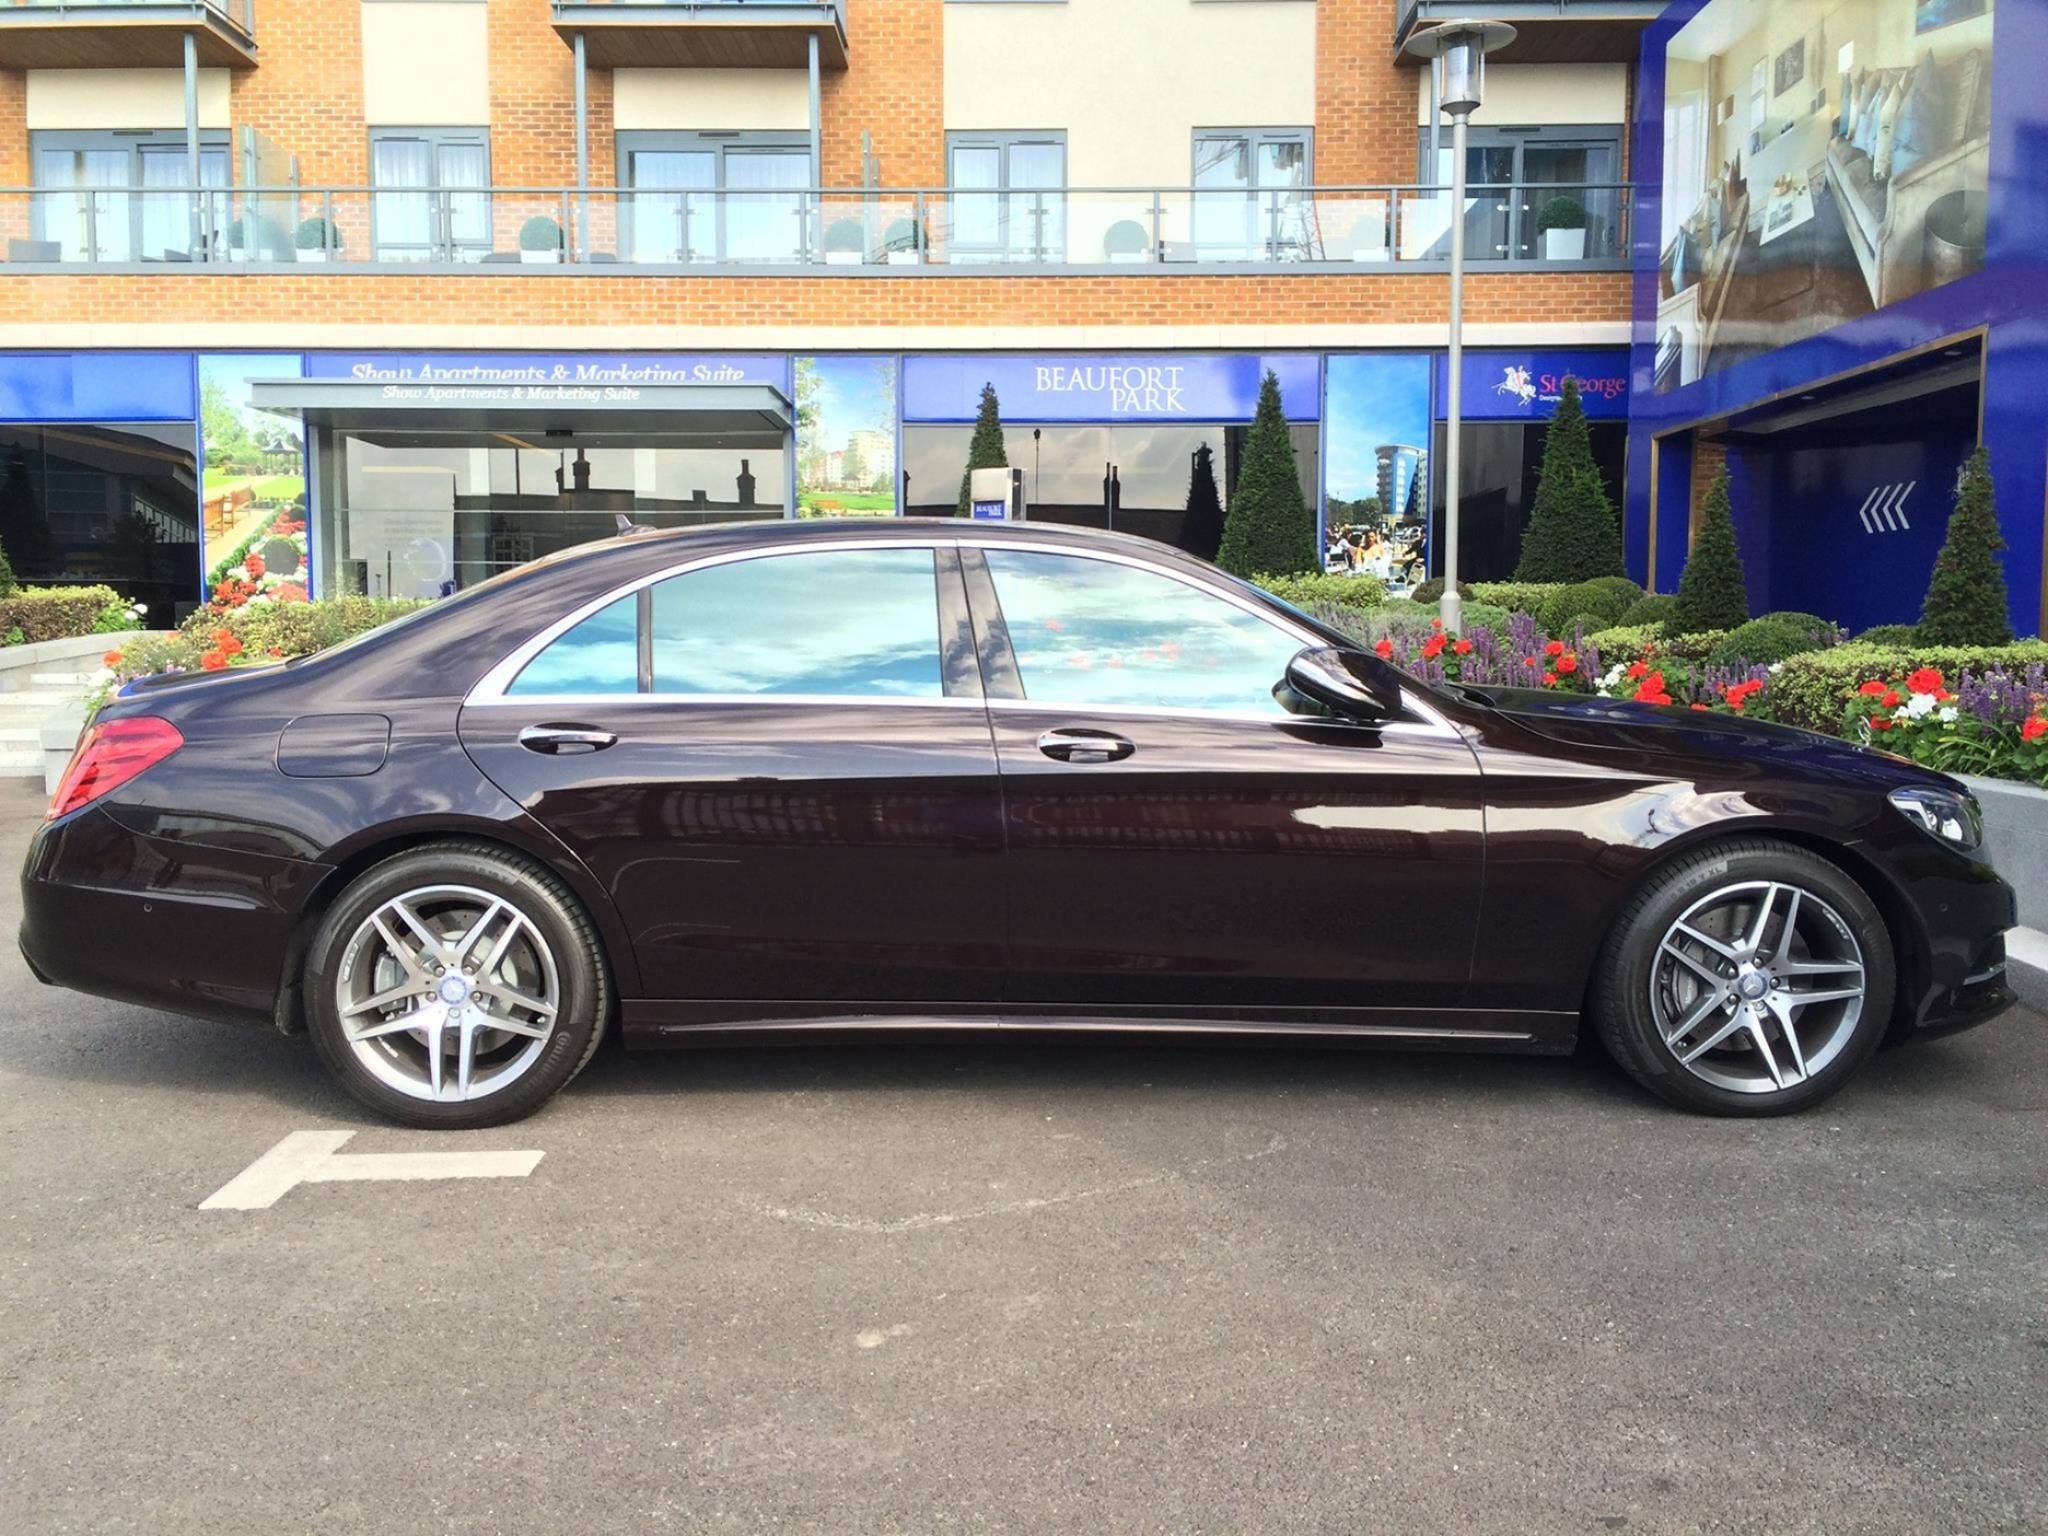 London Chauffeur  Driven S Class Car Services